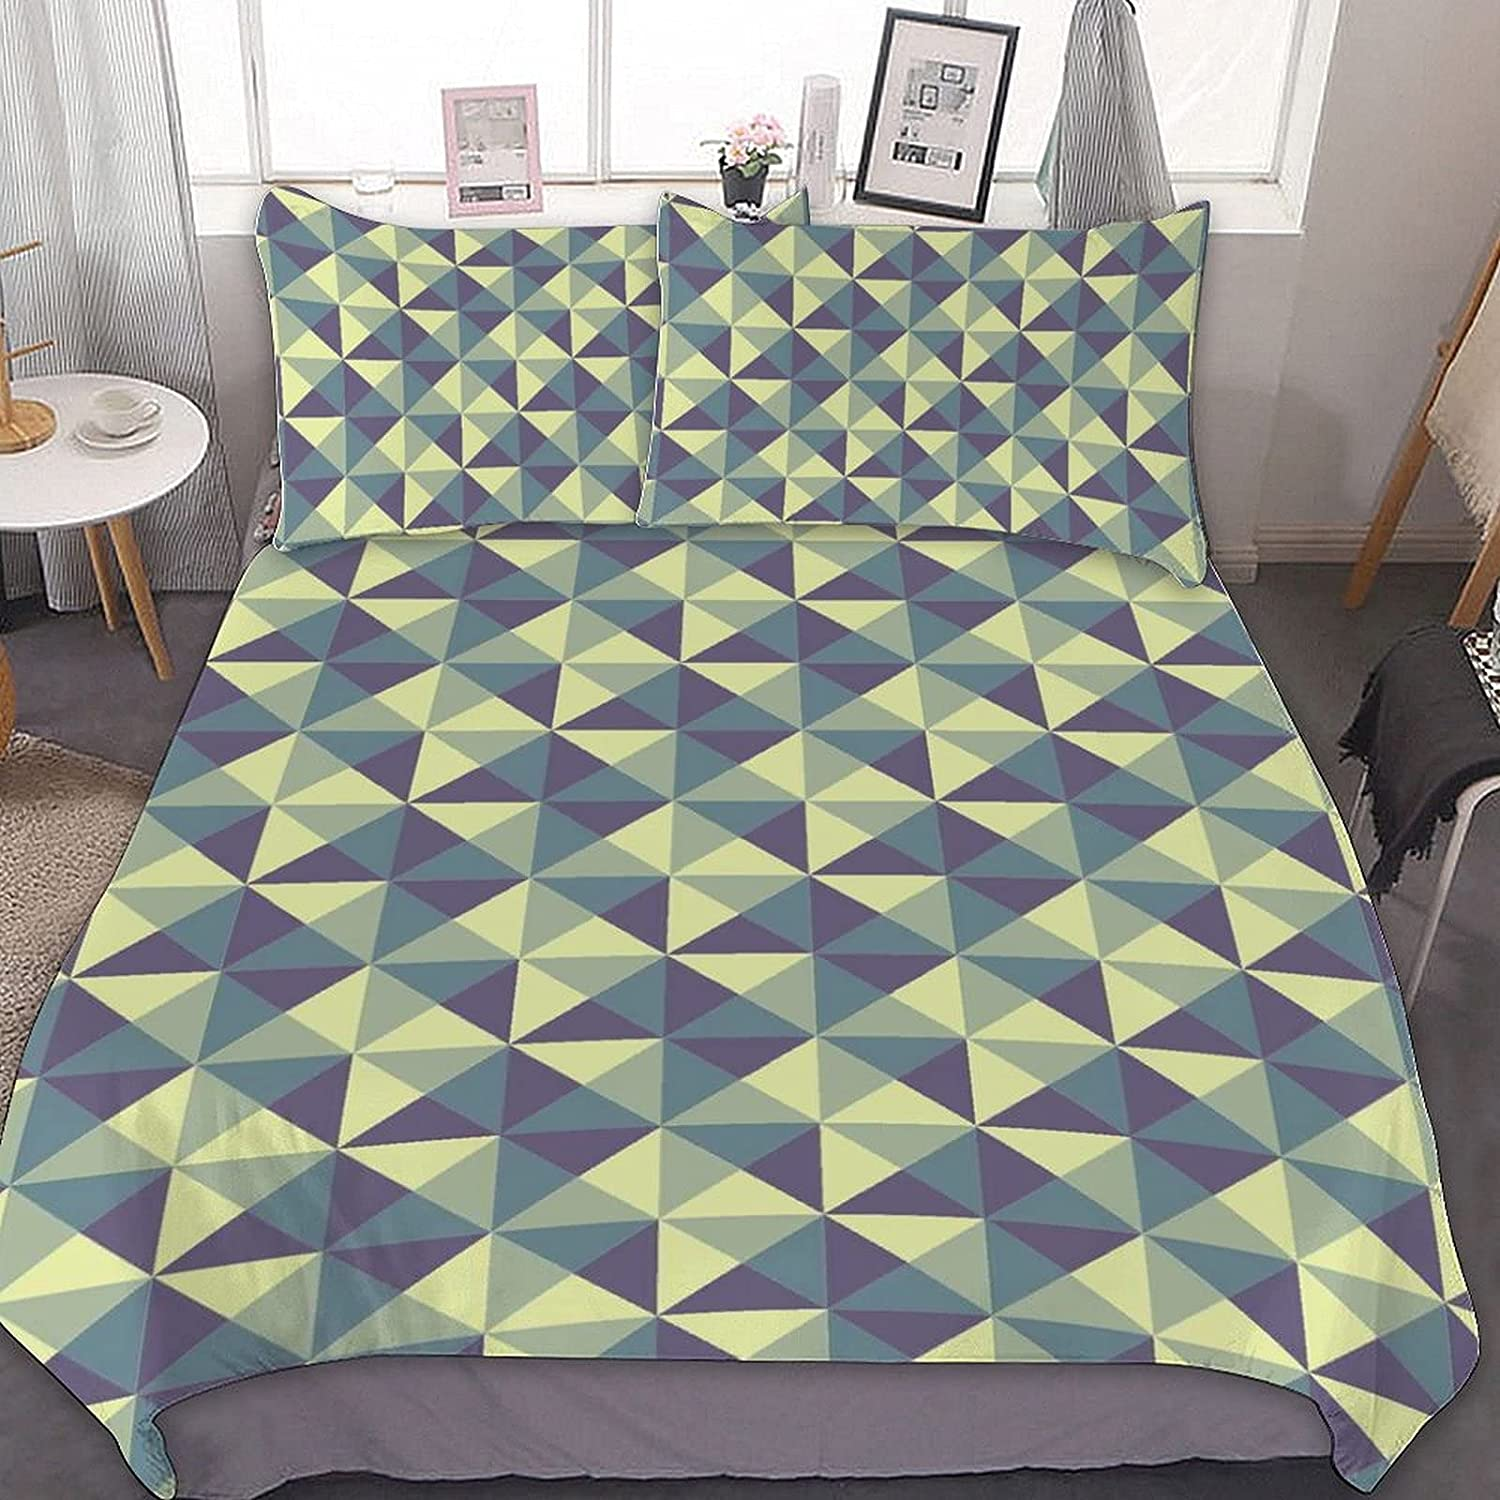 Modern Geometric Bedding Set 3 Co Super sale period limited Ultra Selling Piece Soft Comforter